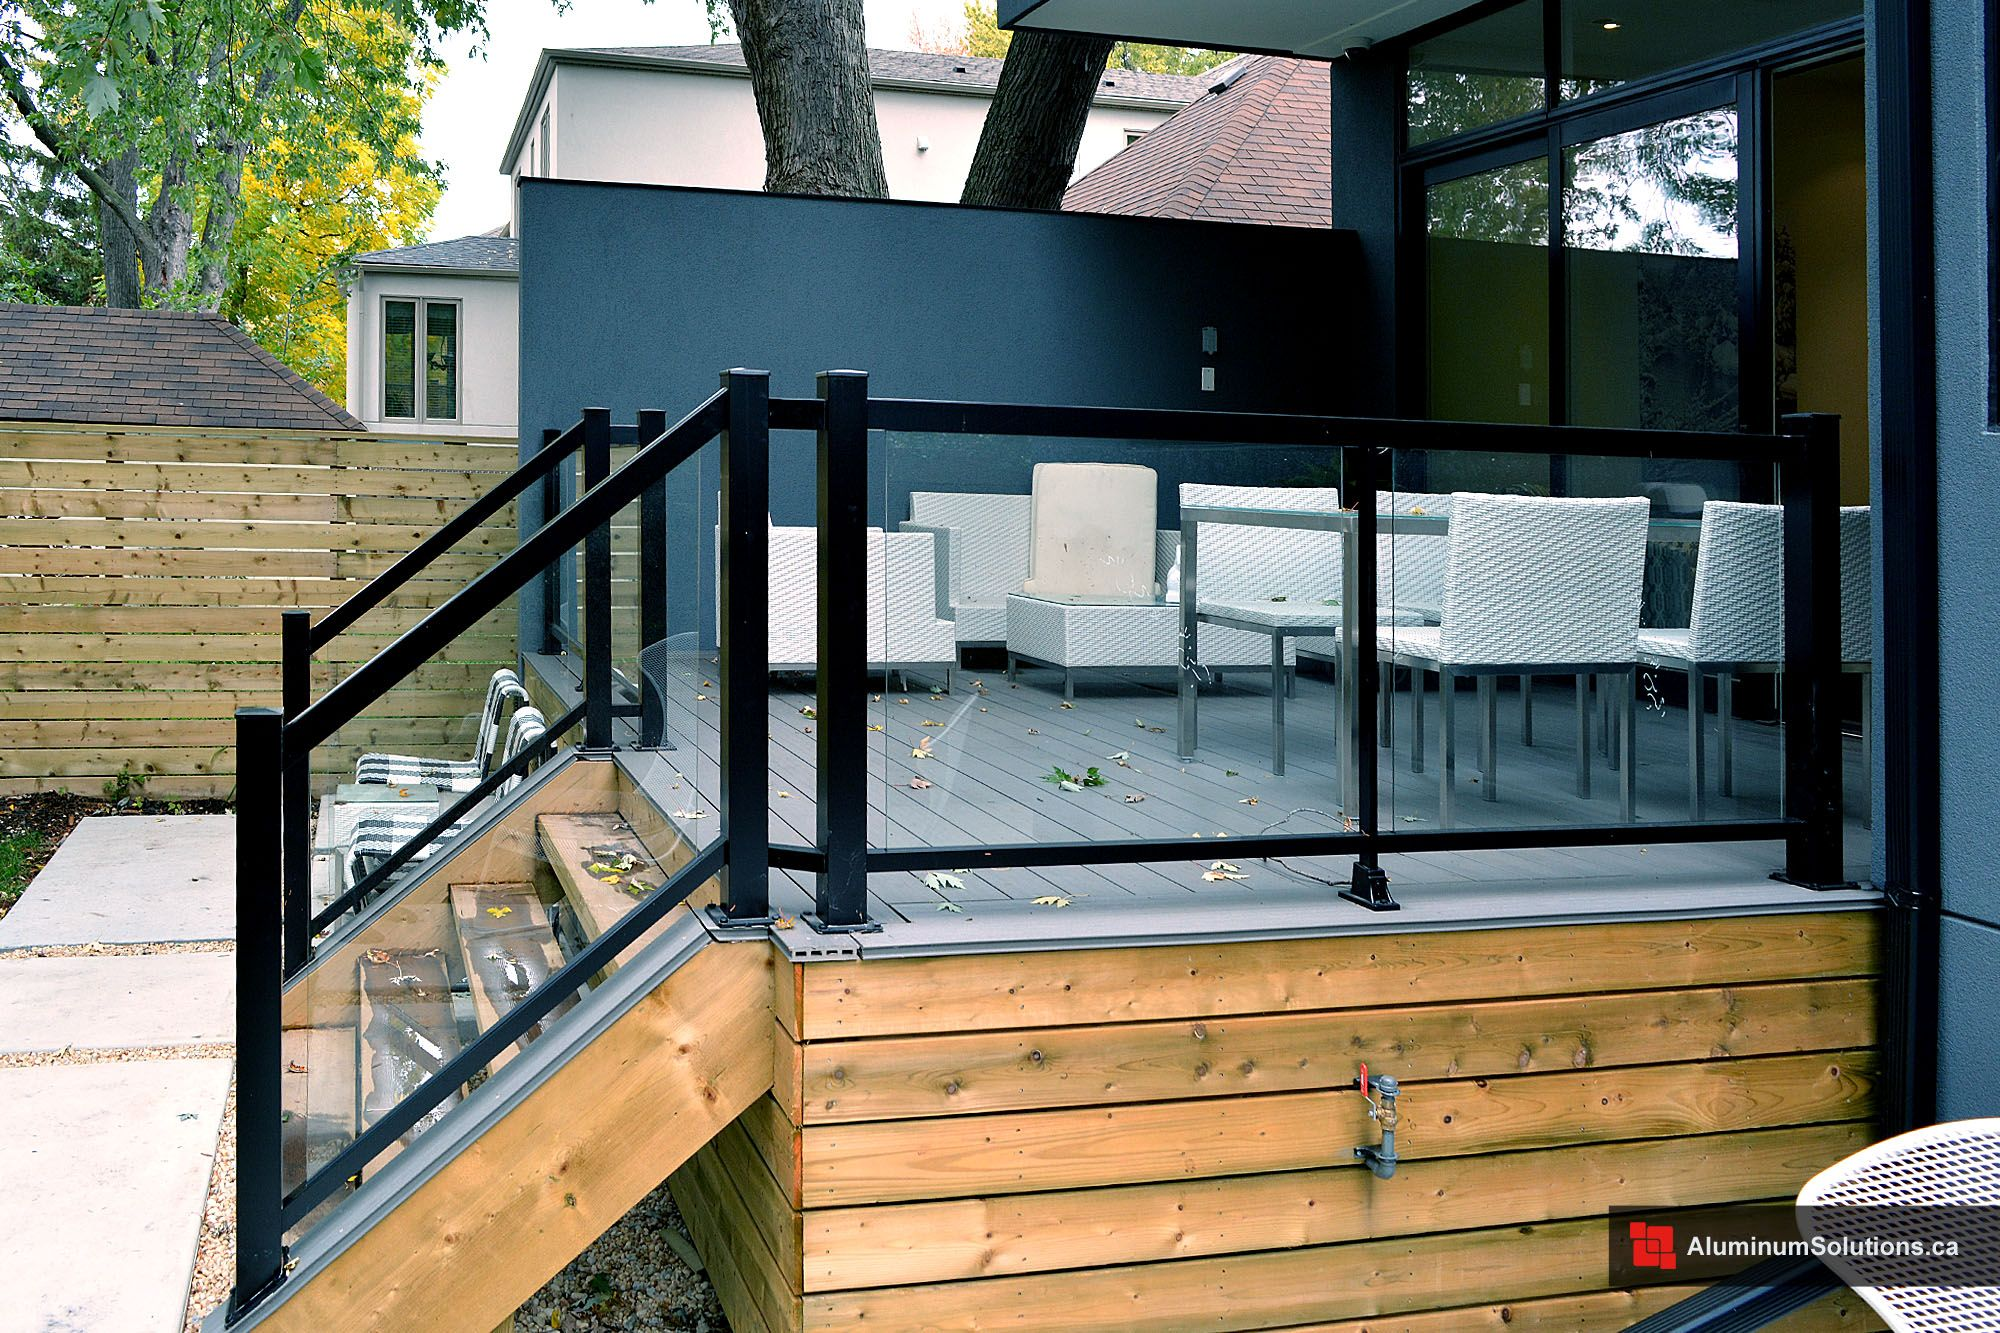 Aluminum Deck Railings Call 905 418 0444 for your free quote